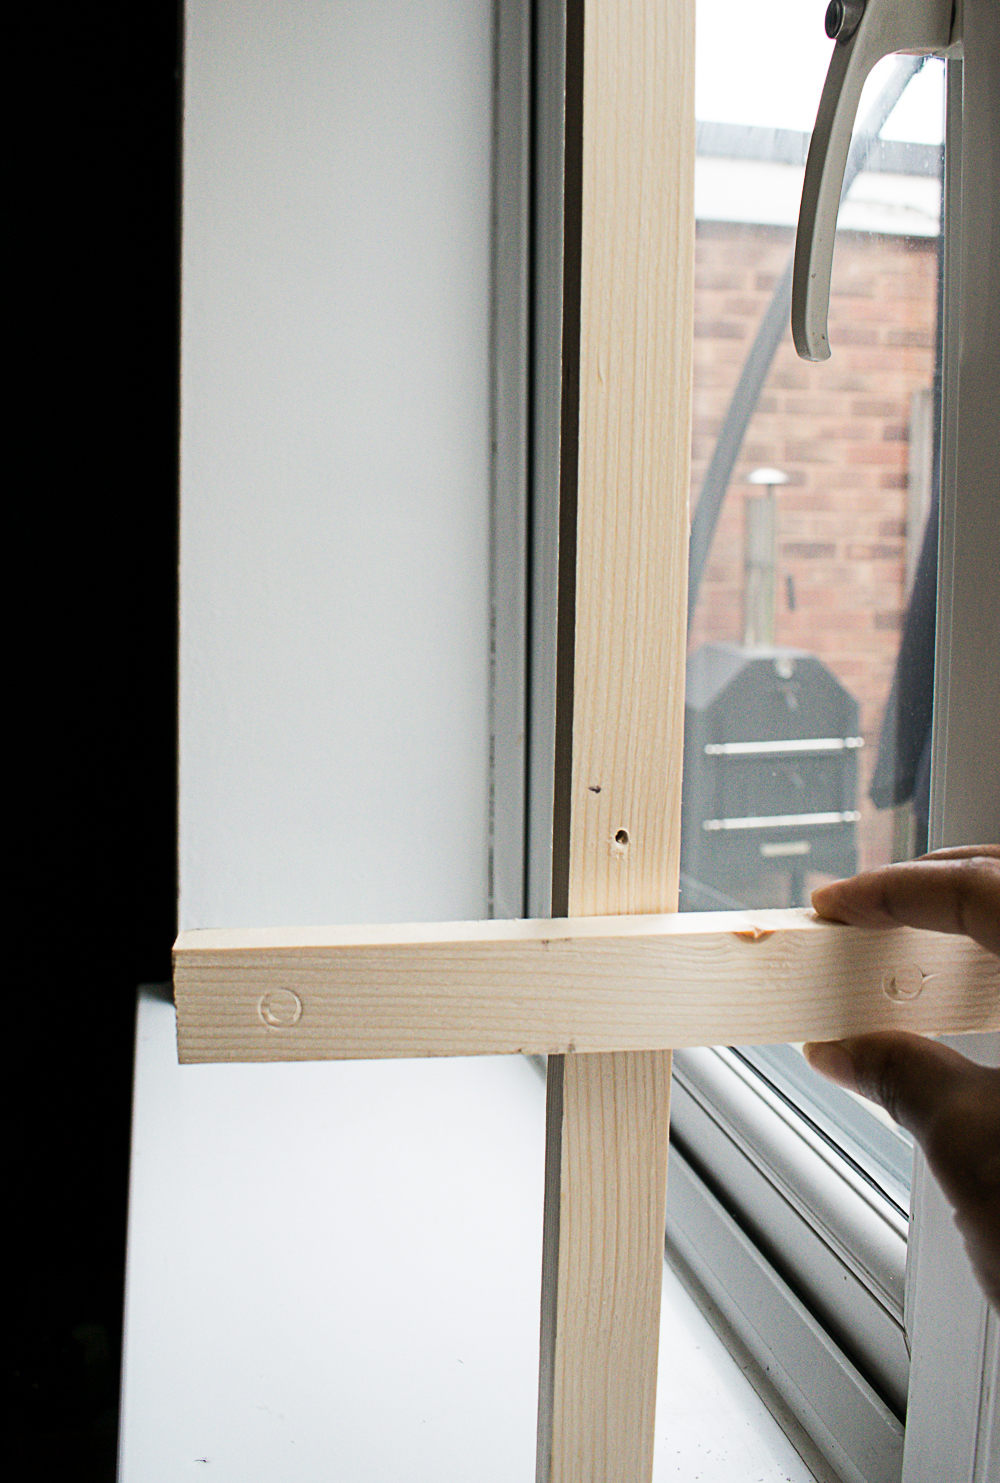 Showing wear to position the wooden brackets on the vertical frame in the window